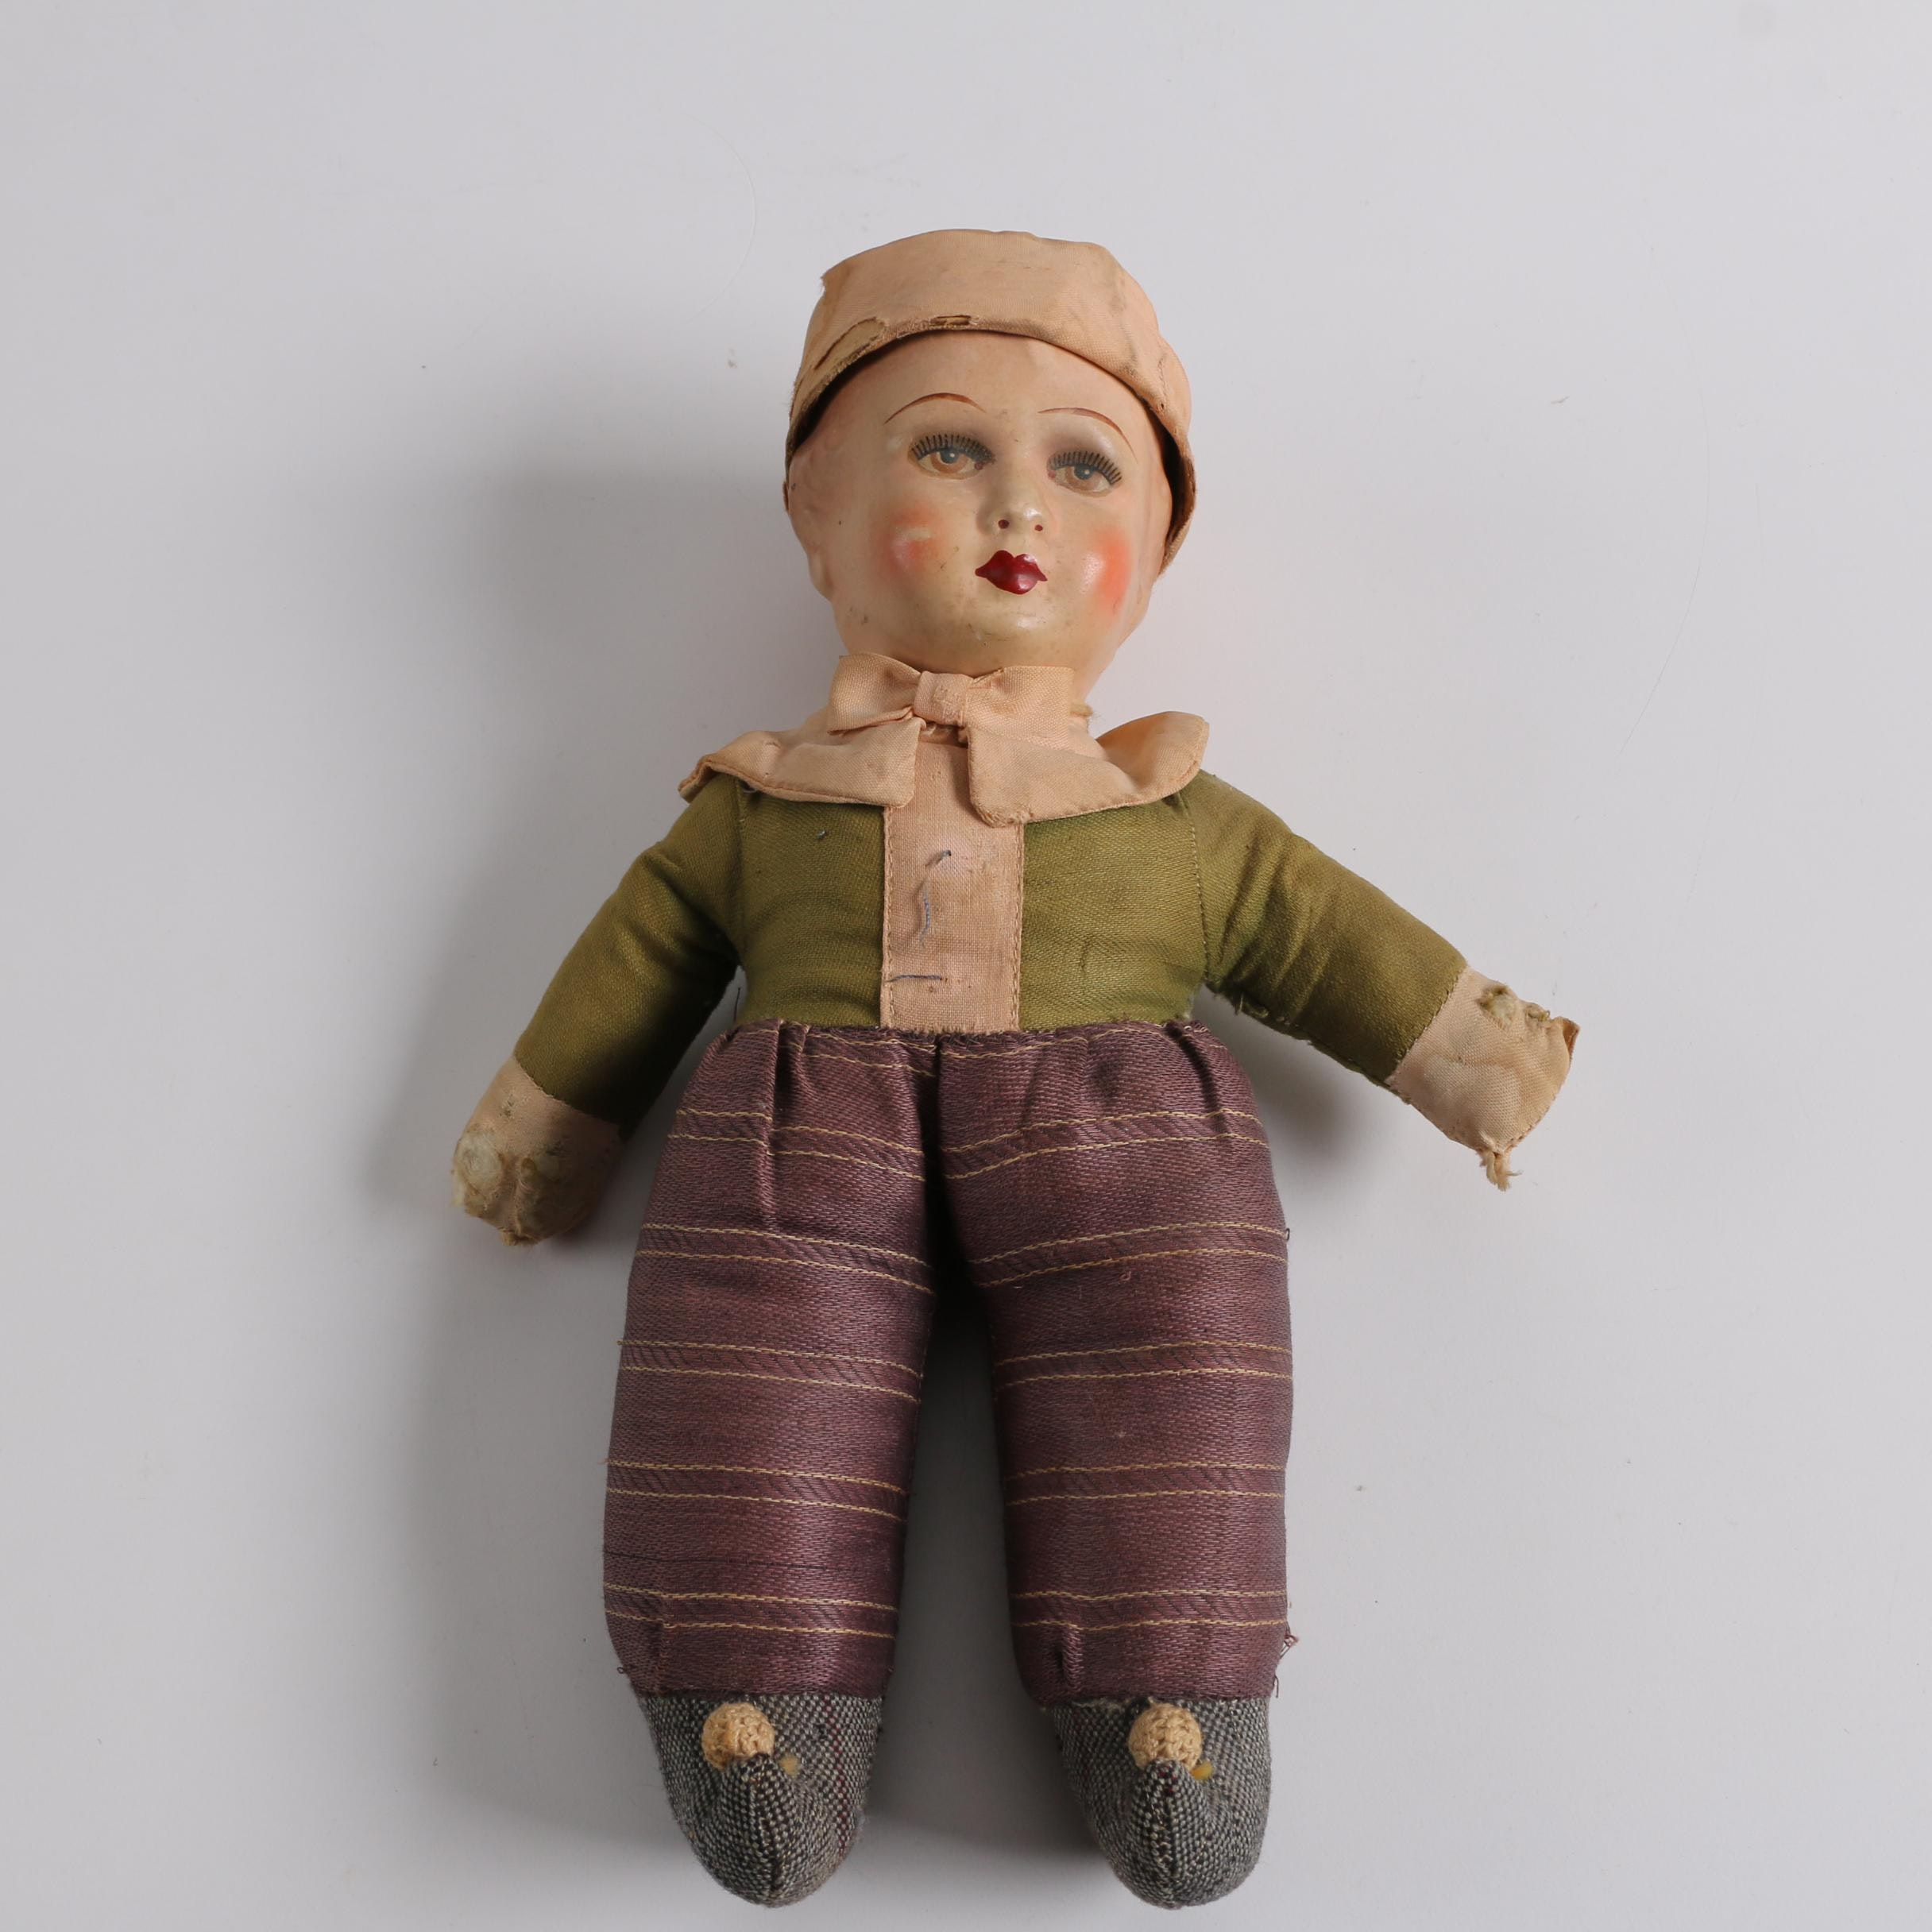 Circa 1920s Unica Composition and Cloth Doll with Rattle